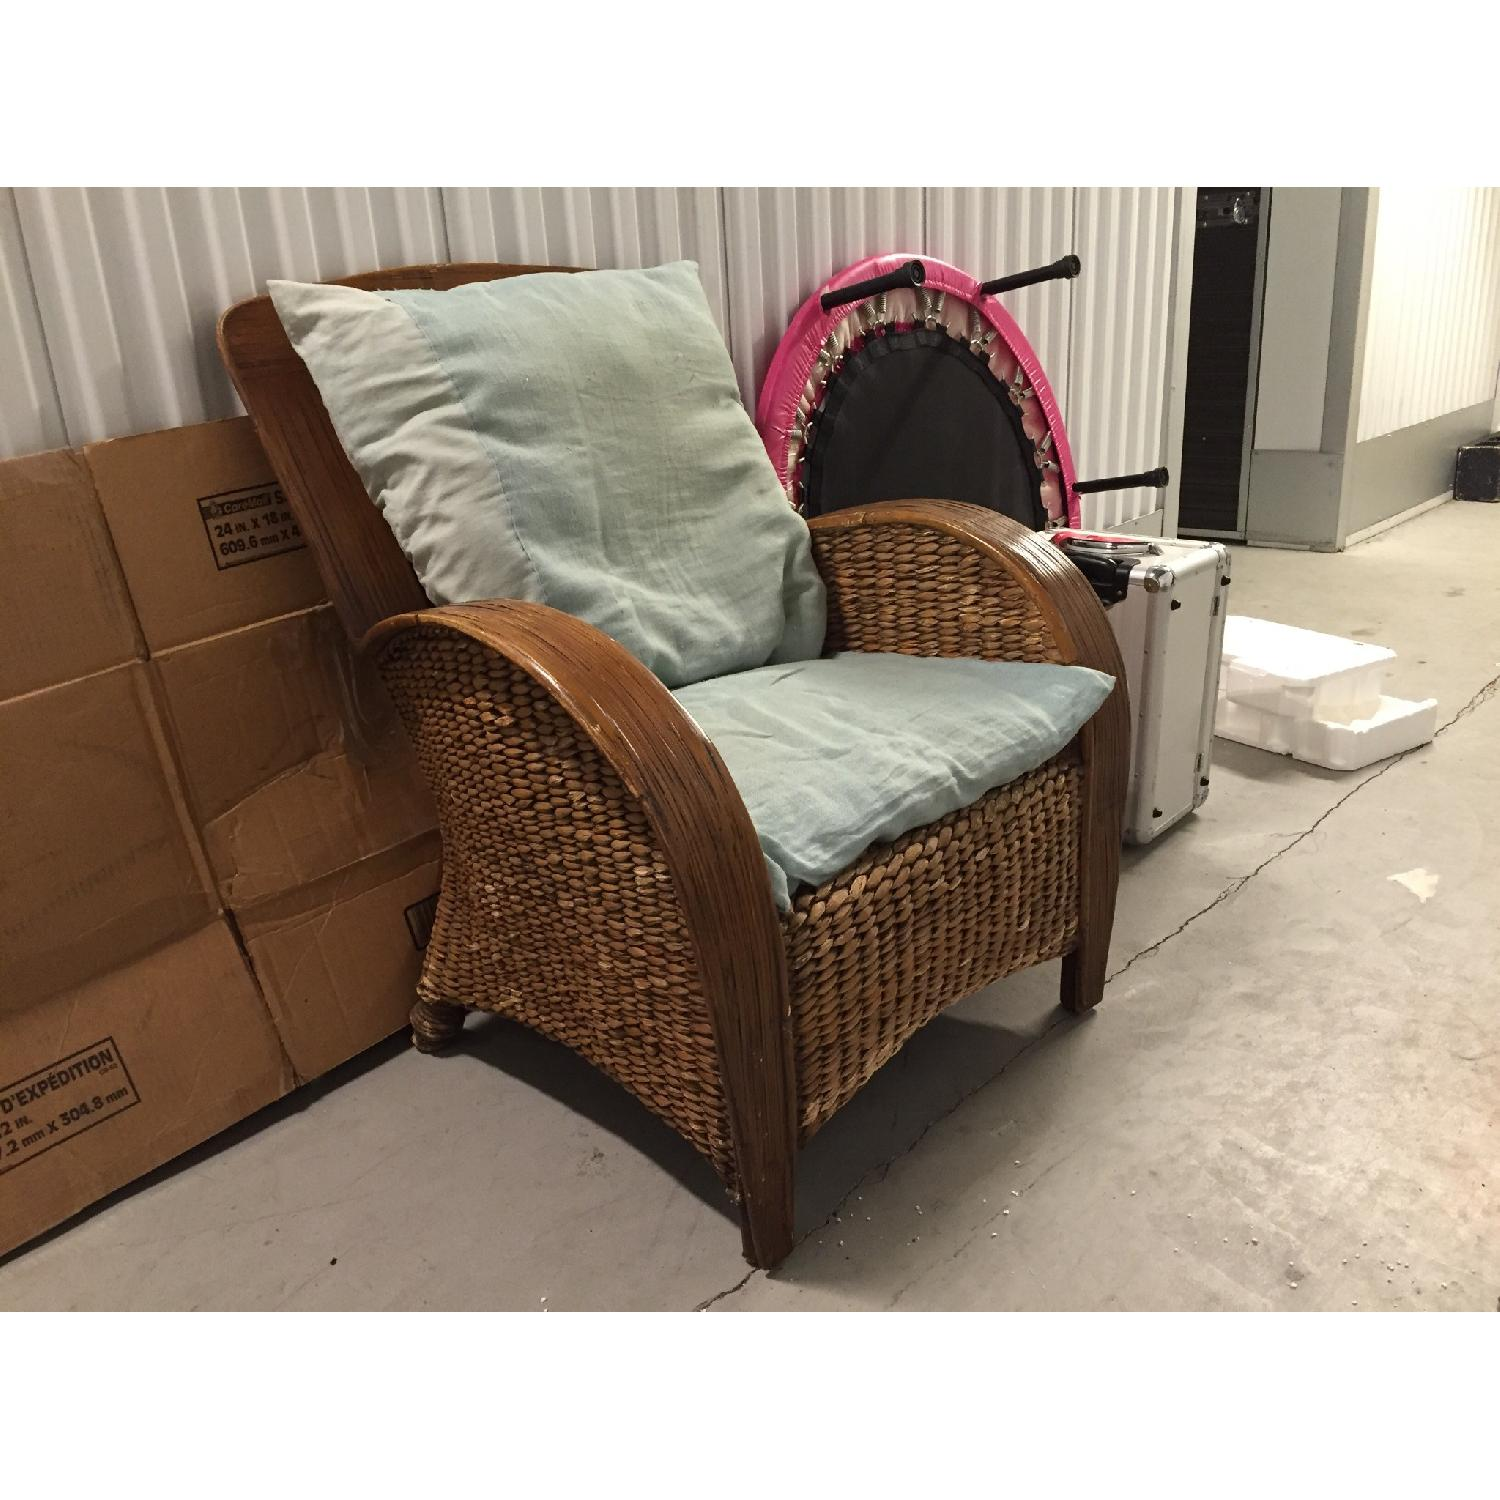 Pier 1 Imports Wicker Chair - image-1